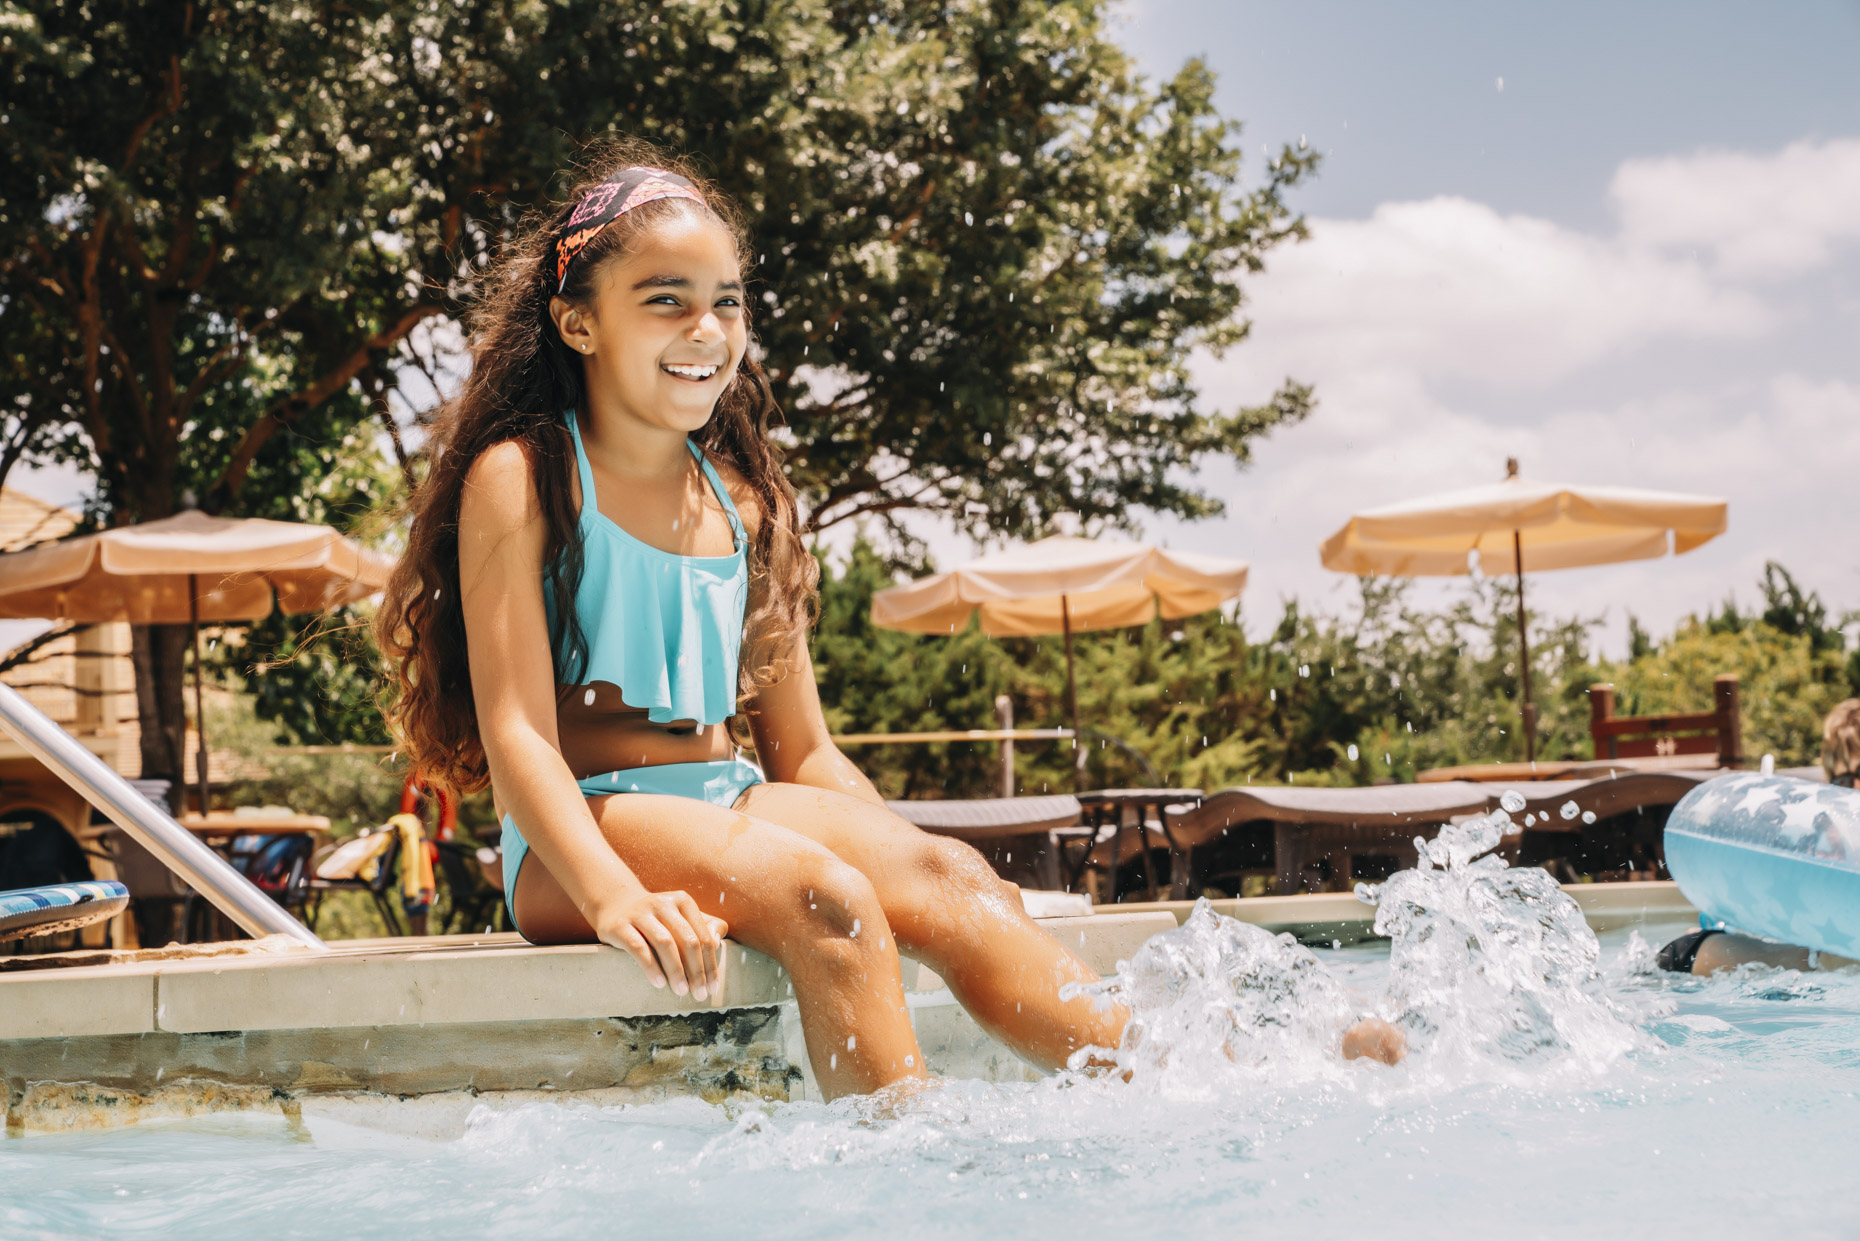 Smiling hispanic girl sitting poolside kicking water in pool